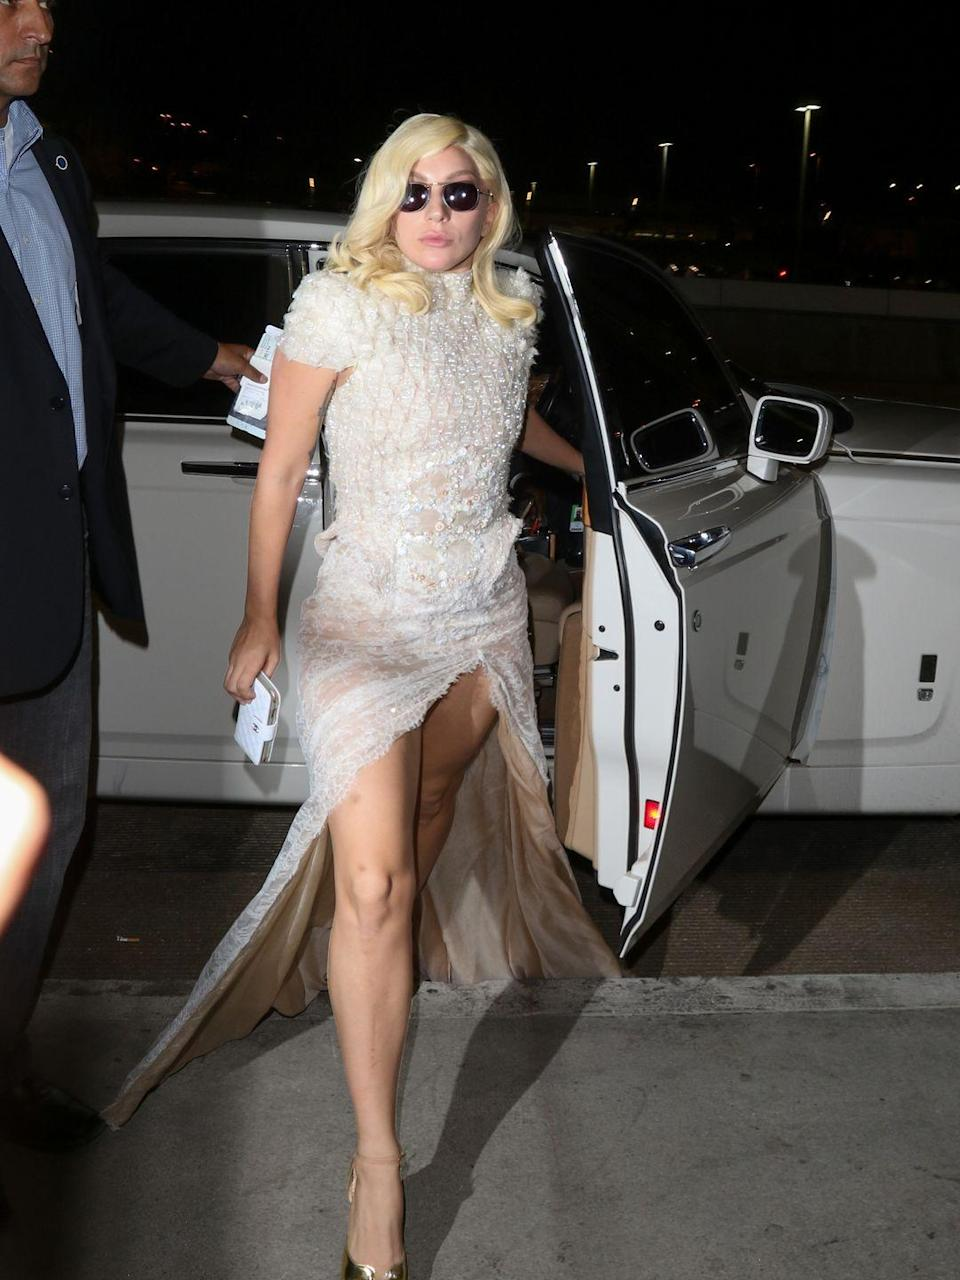 <p><strong>Lady Gaga, 2015:</strong> Impractical train + crotch-baring slit. Double whammy.</p>